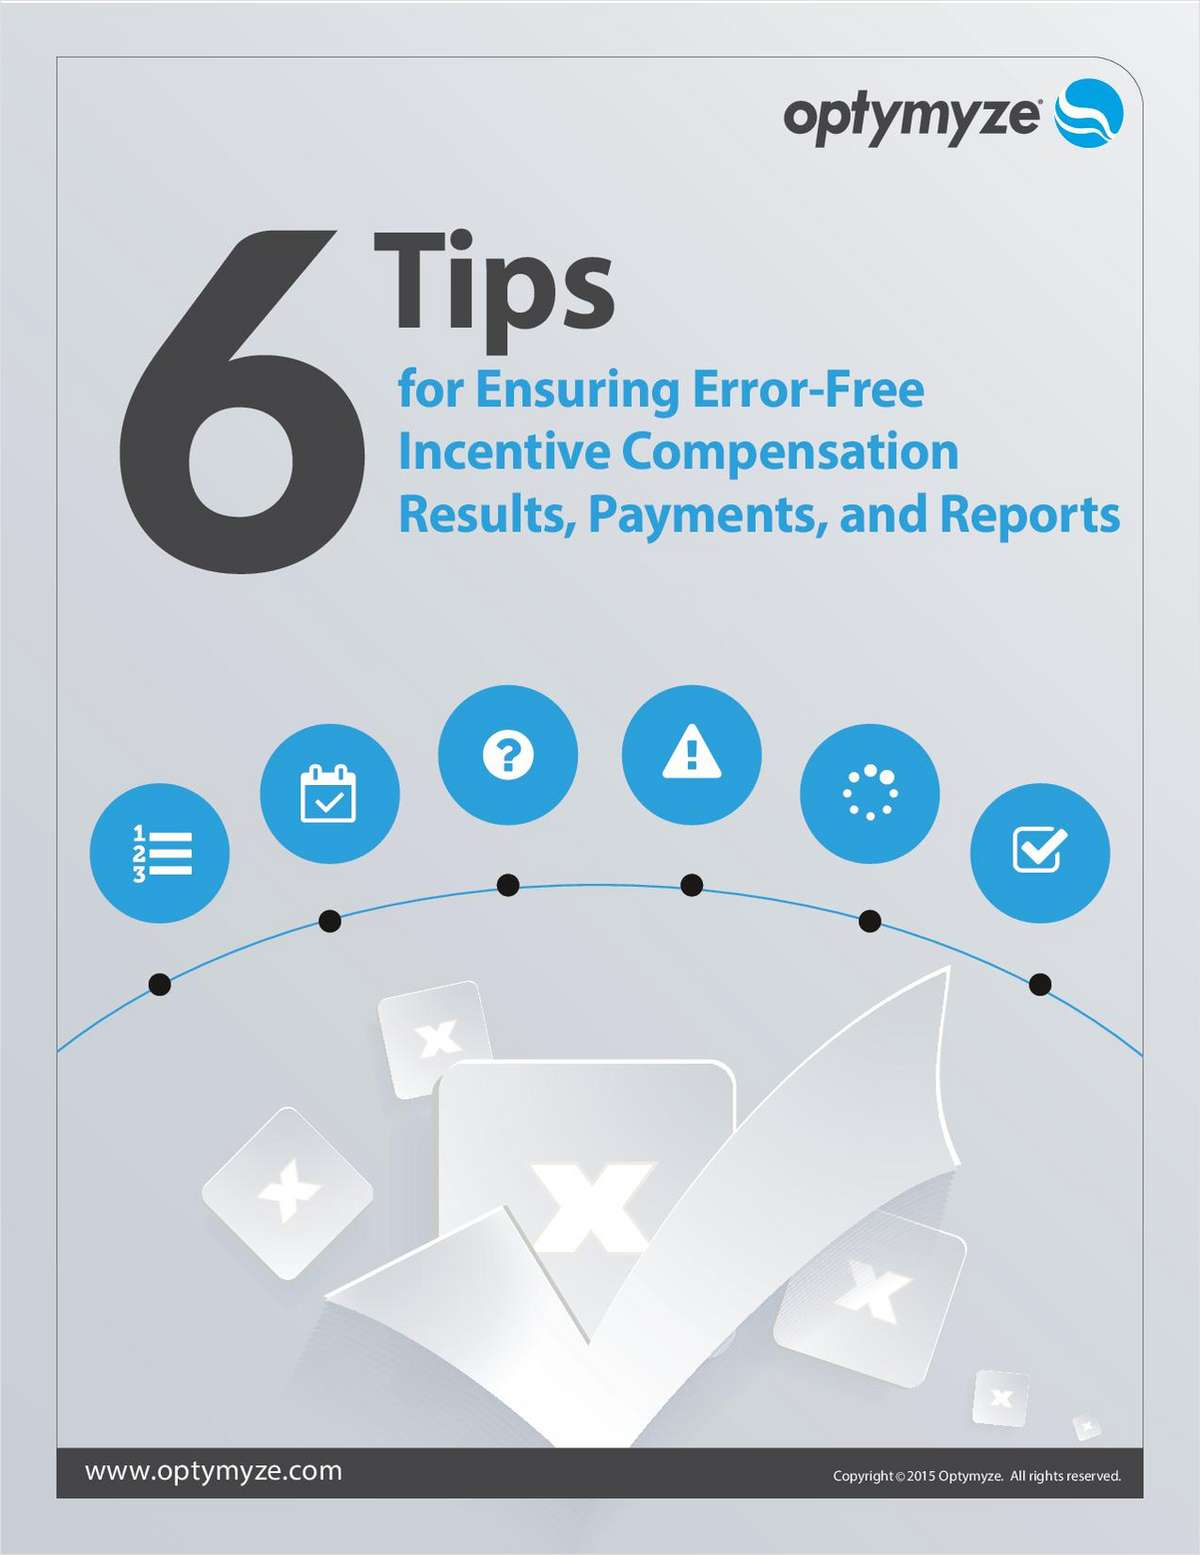 6 Tips for Ensuring Error-free Incentive Compensation Results, Payments, and Reports